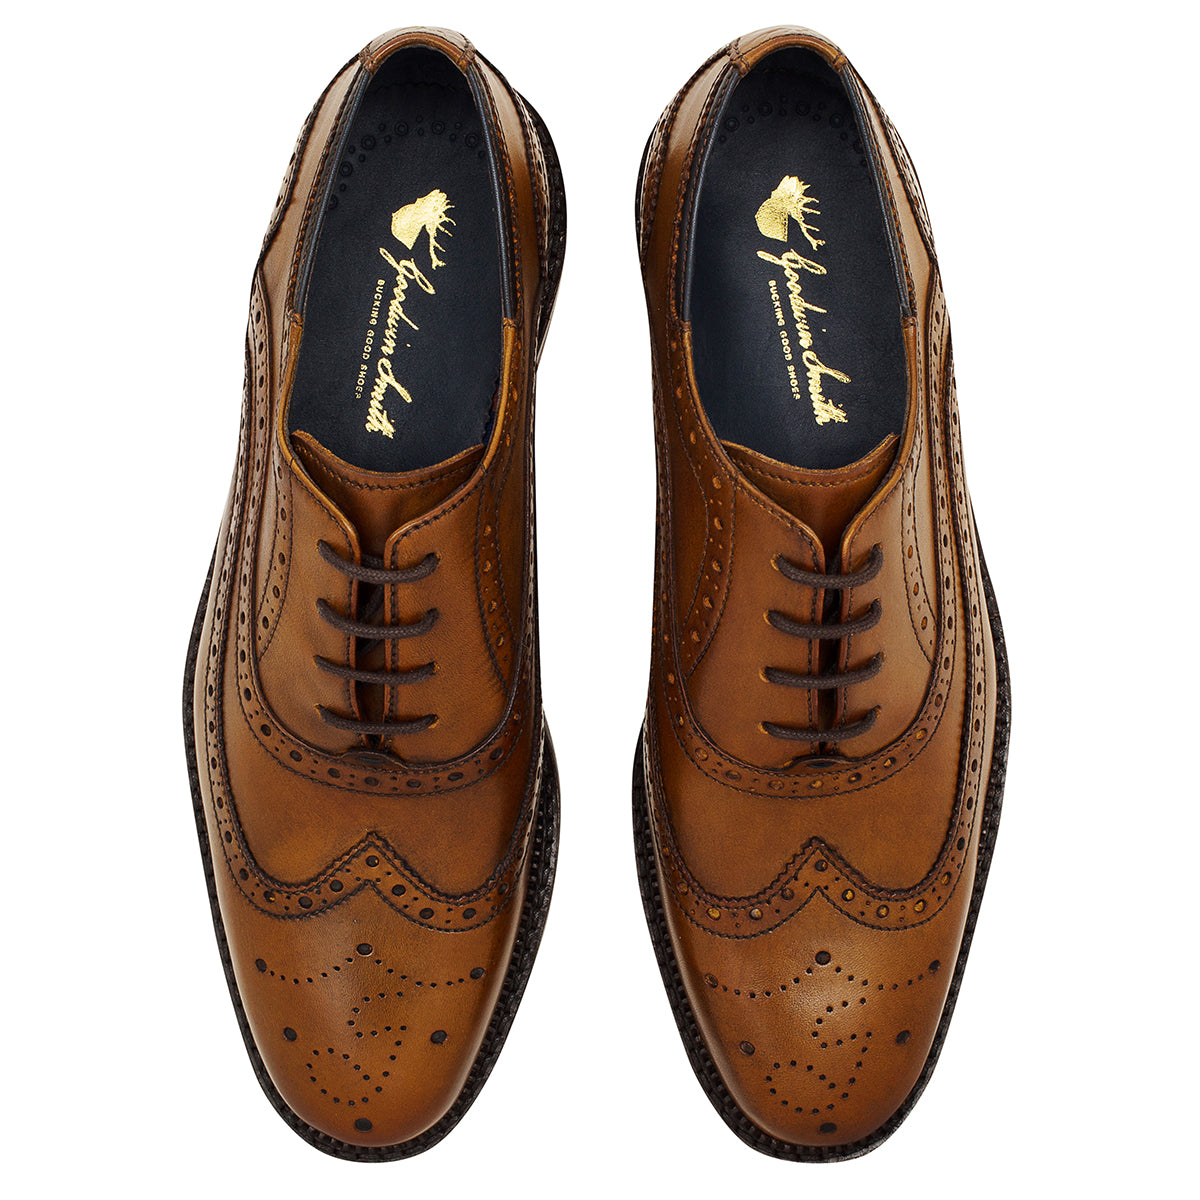 pair of Chatworth Tan Brogue Shoe by Goodwin Smith